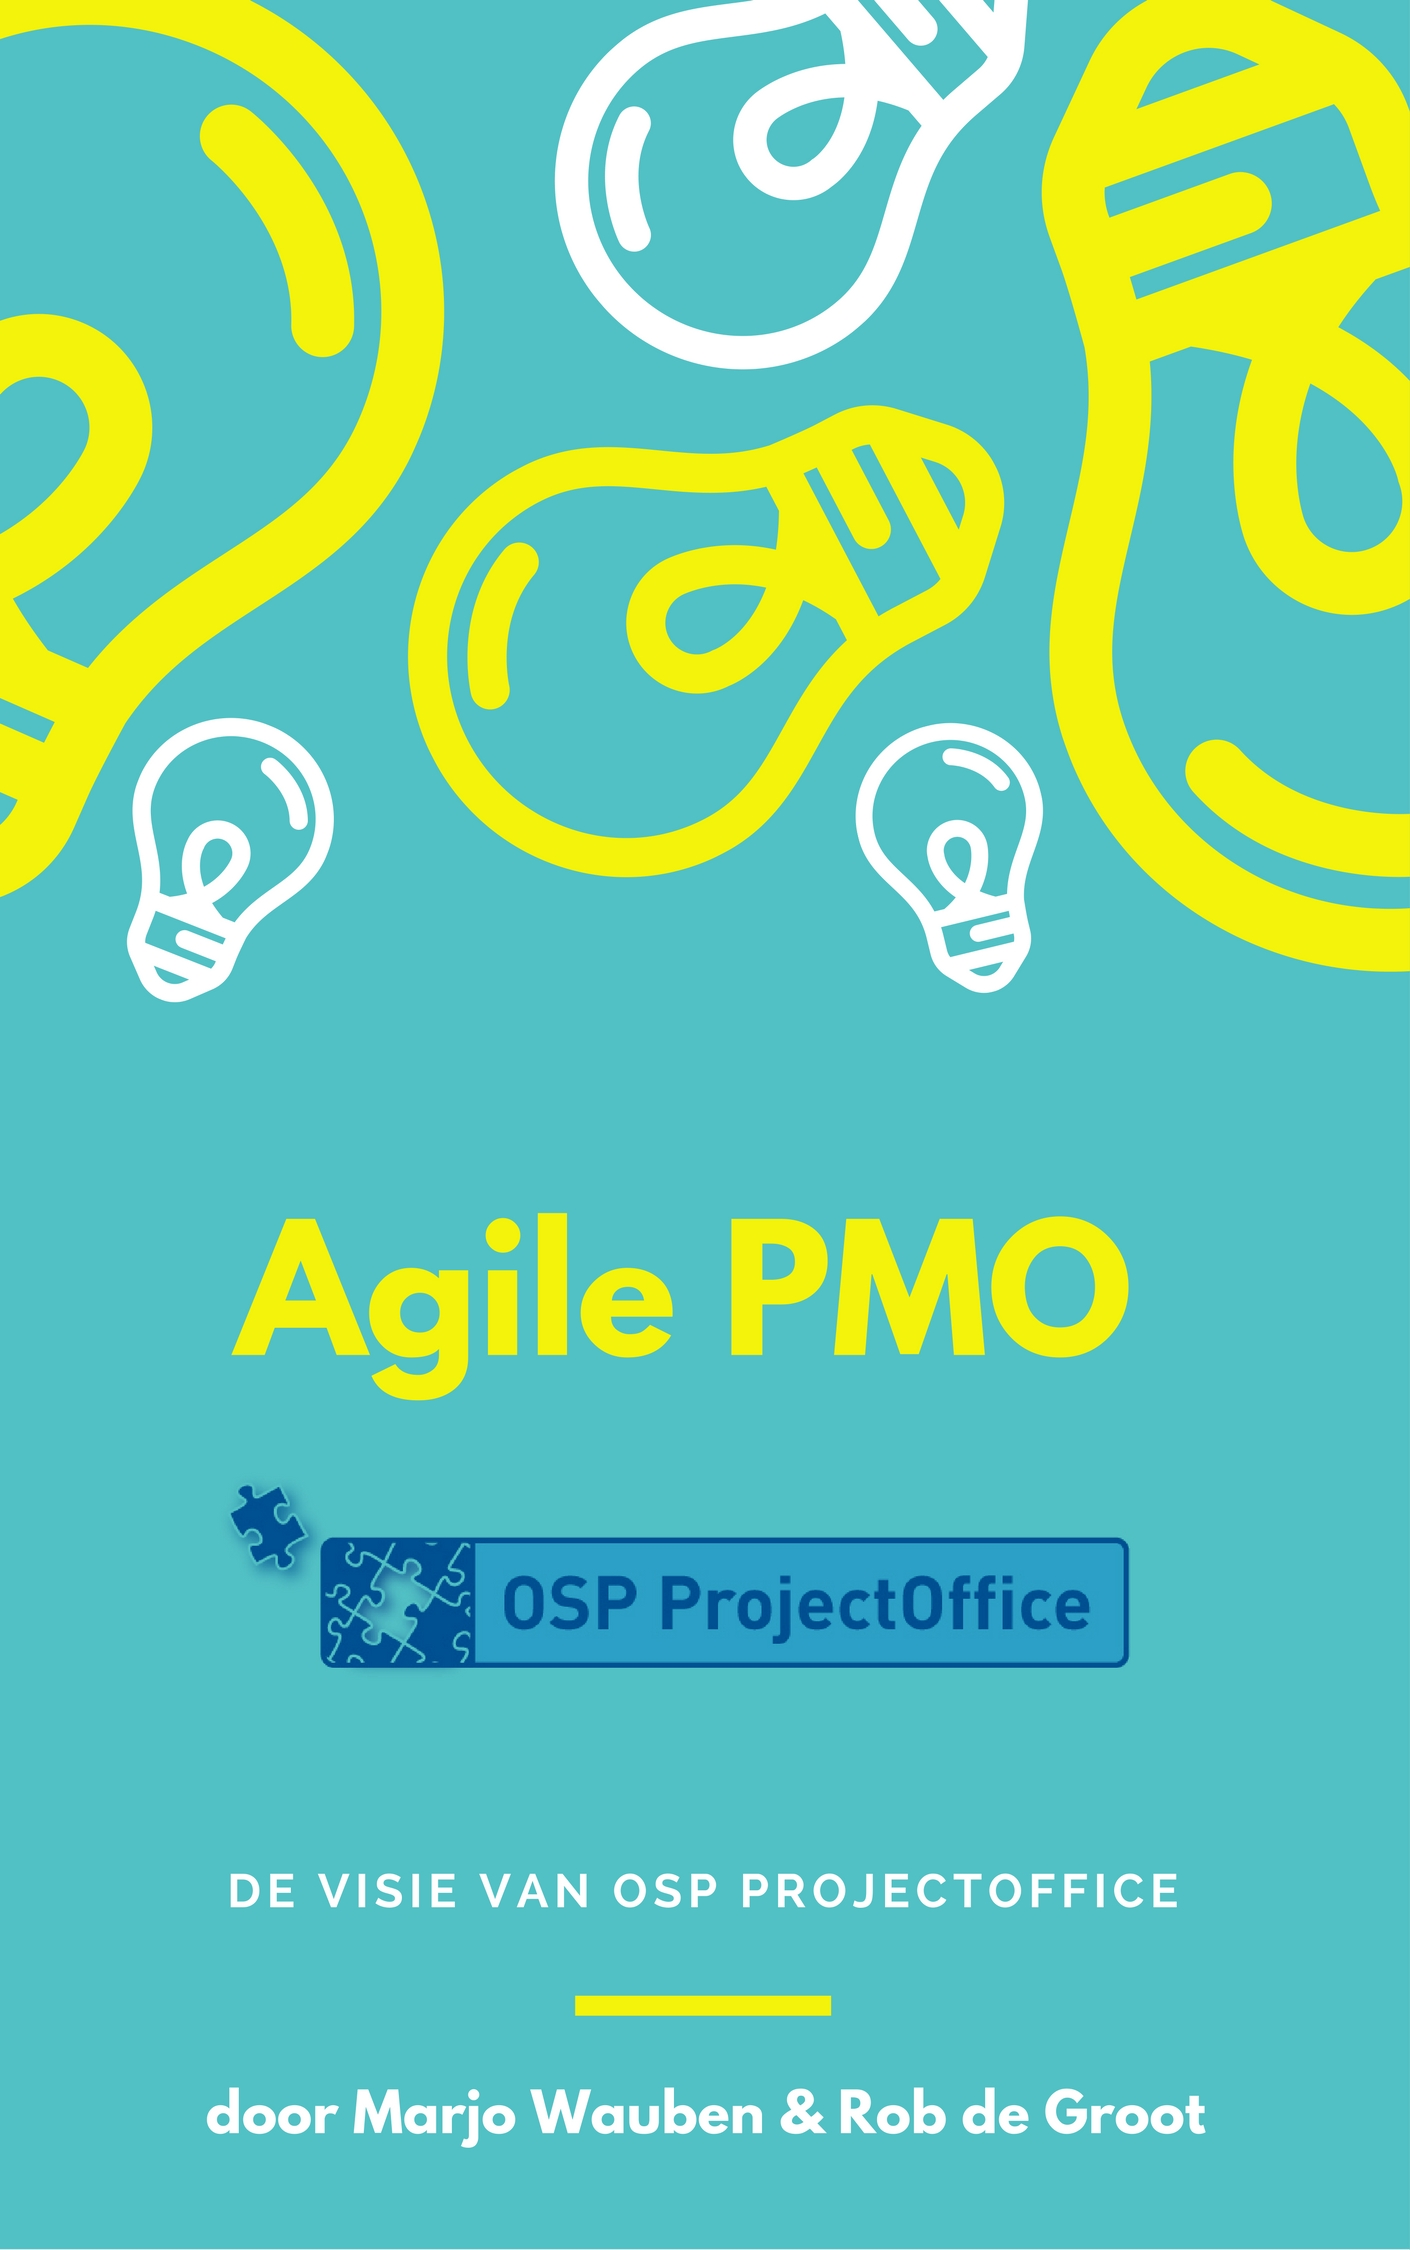 OSPProjectOffice_Agile-PMO_Ebook_Voorblad